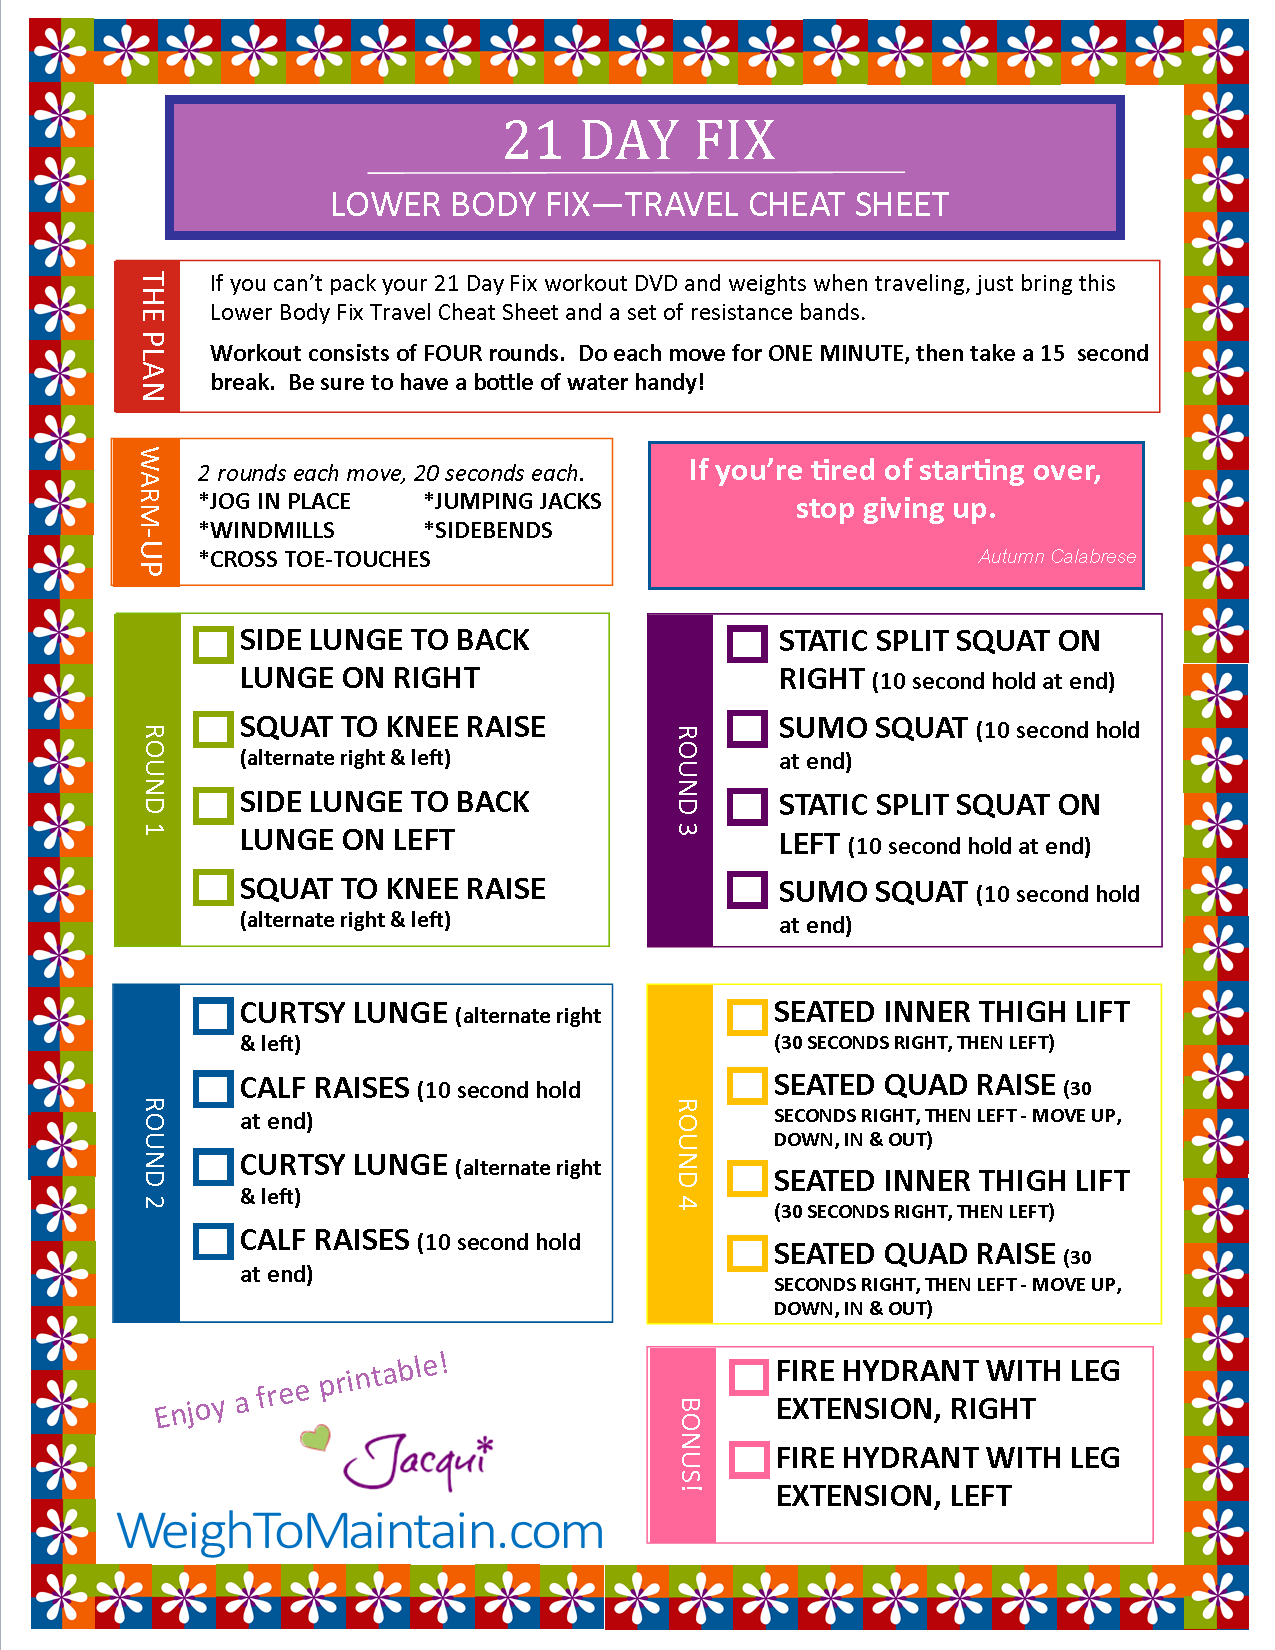 Free printable pdf of the beachbody day fix workout lower body stay fit while traveling just print off sheet and bring also rh pinterest